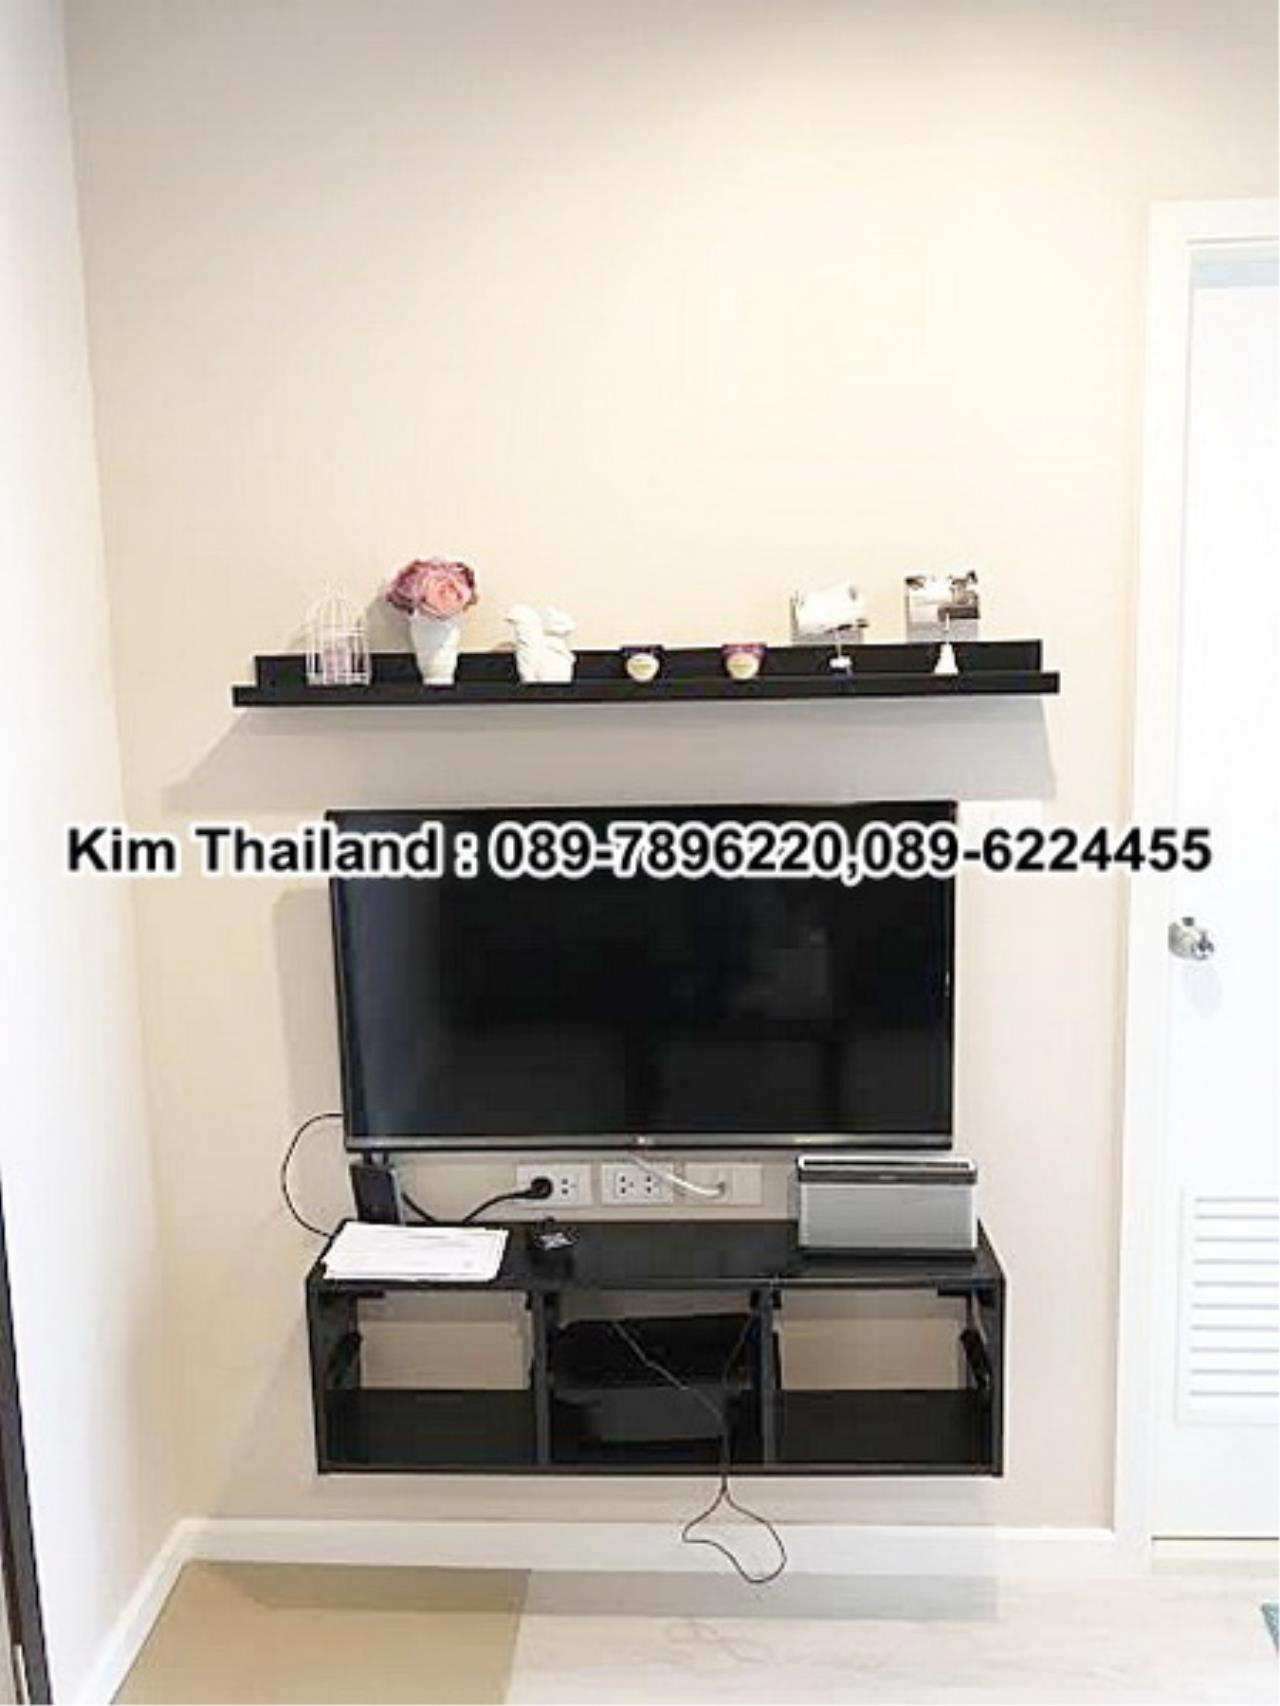 BKKcondorental Agency's For rent, Condo Metroluxe Rama 4., Area 28 sq.m. 1 bedroom. Rental 15,000 THB per month. 2